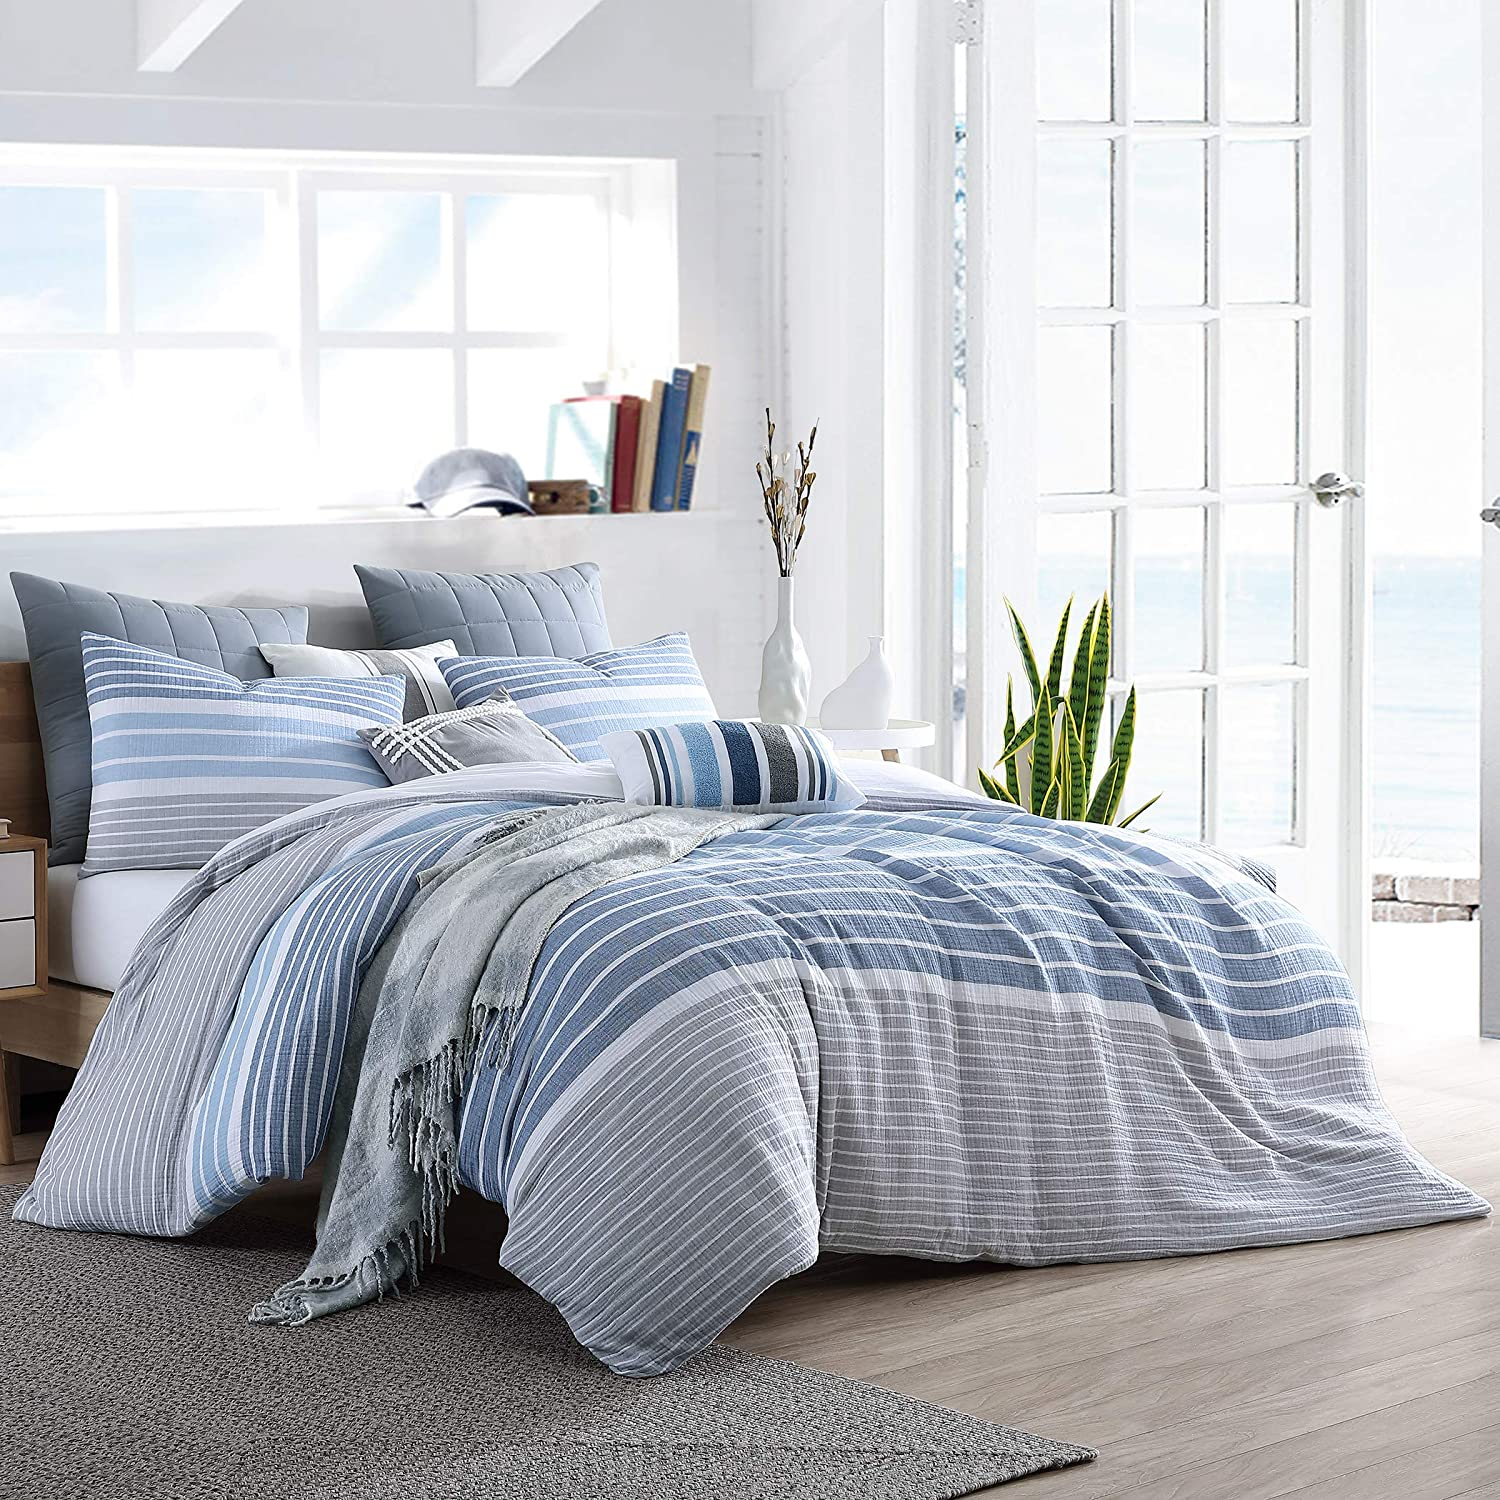 Swift Home Cordelia Prewashed Yarn-Dyed 100% Cotton Gauze Stripe Duvet Cover Set, Oeko-Tex Certified, Ultra Soft and Breathable, Button Closure, All Season - Blue, Twin/Twin XL (68